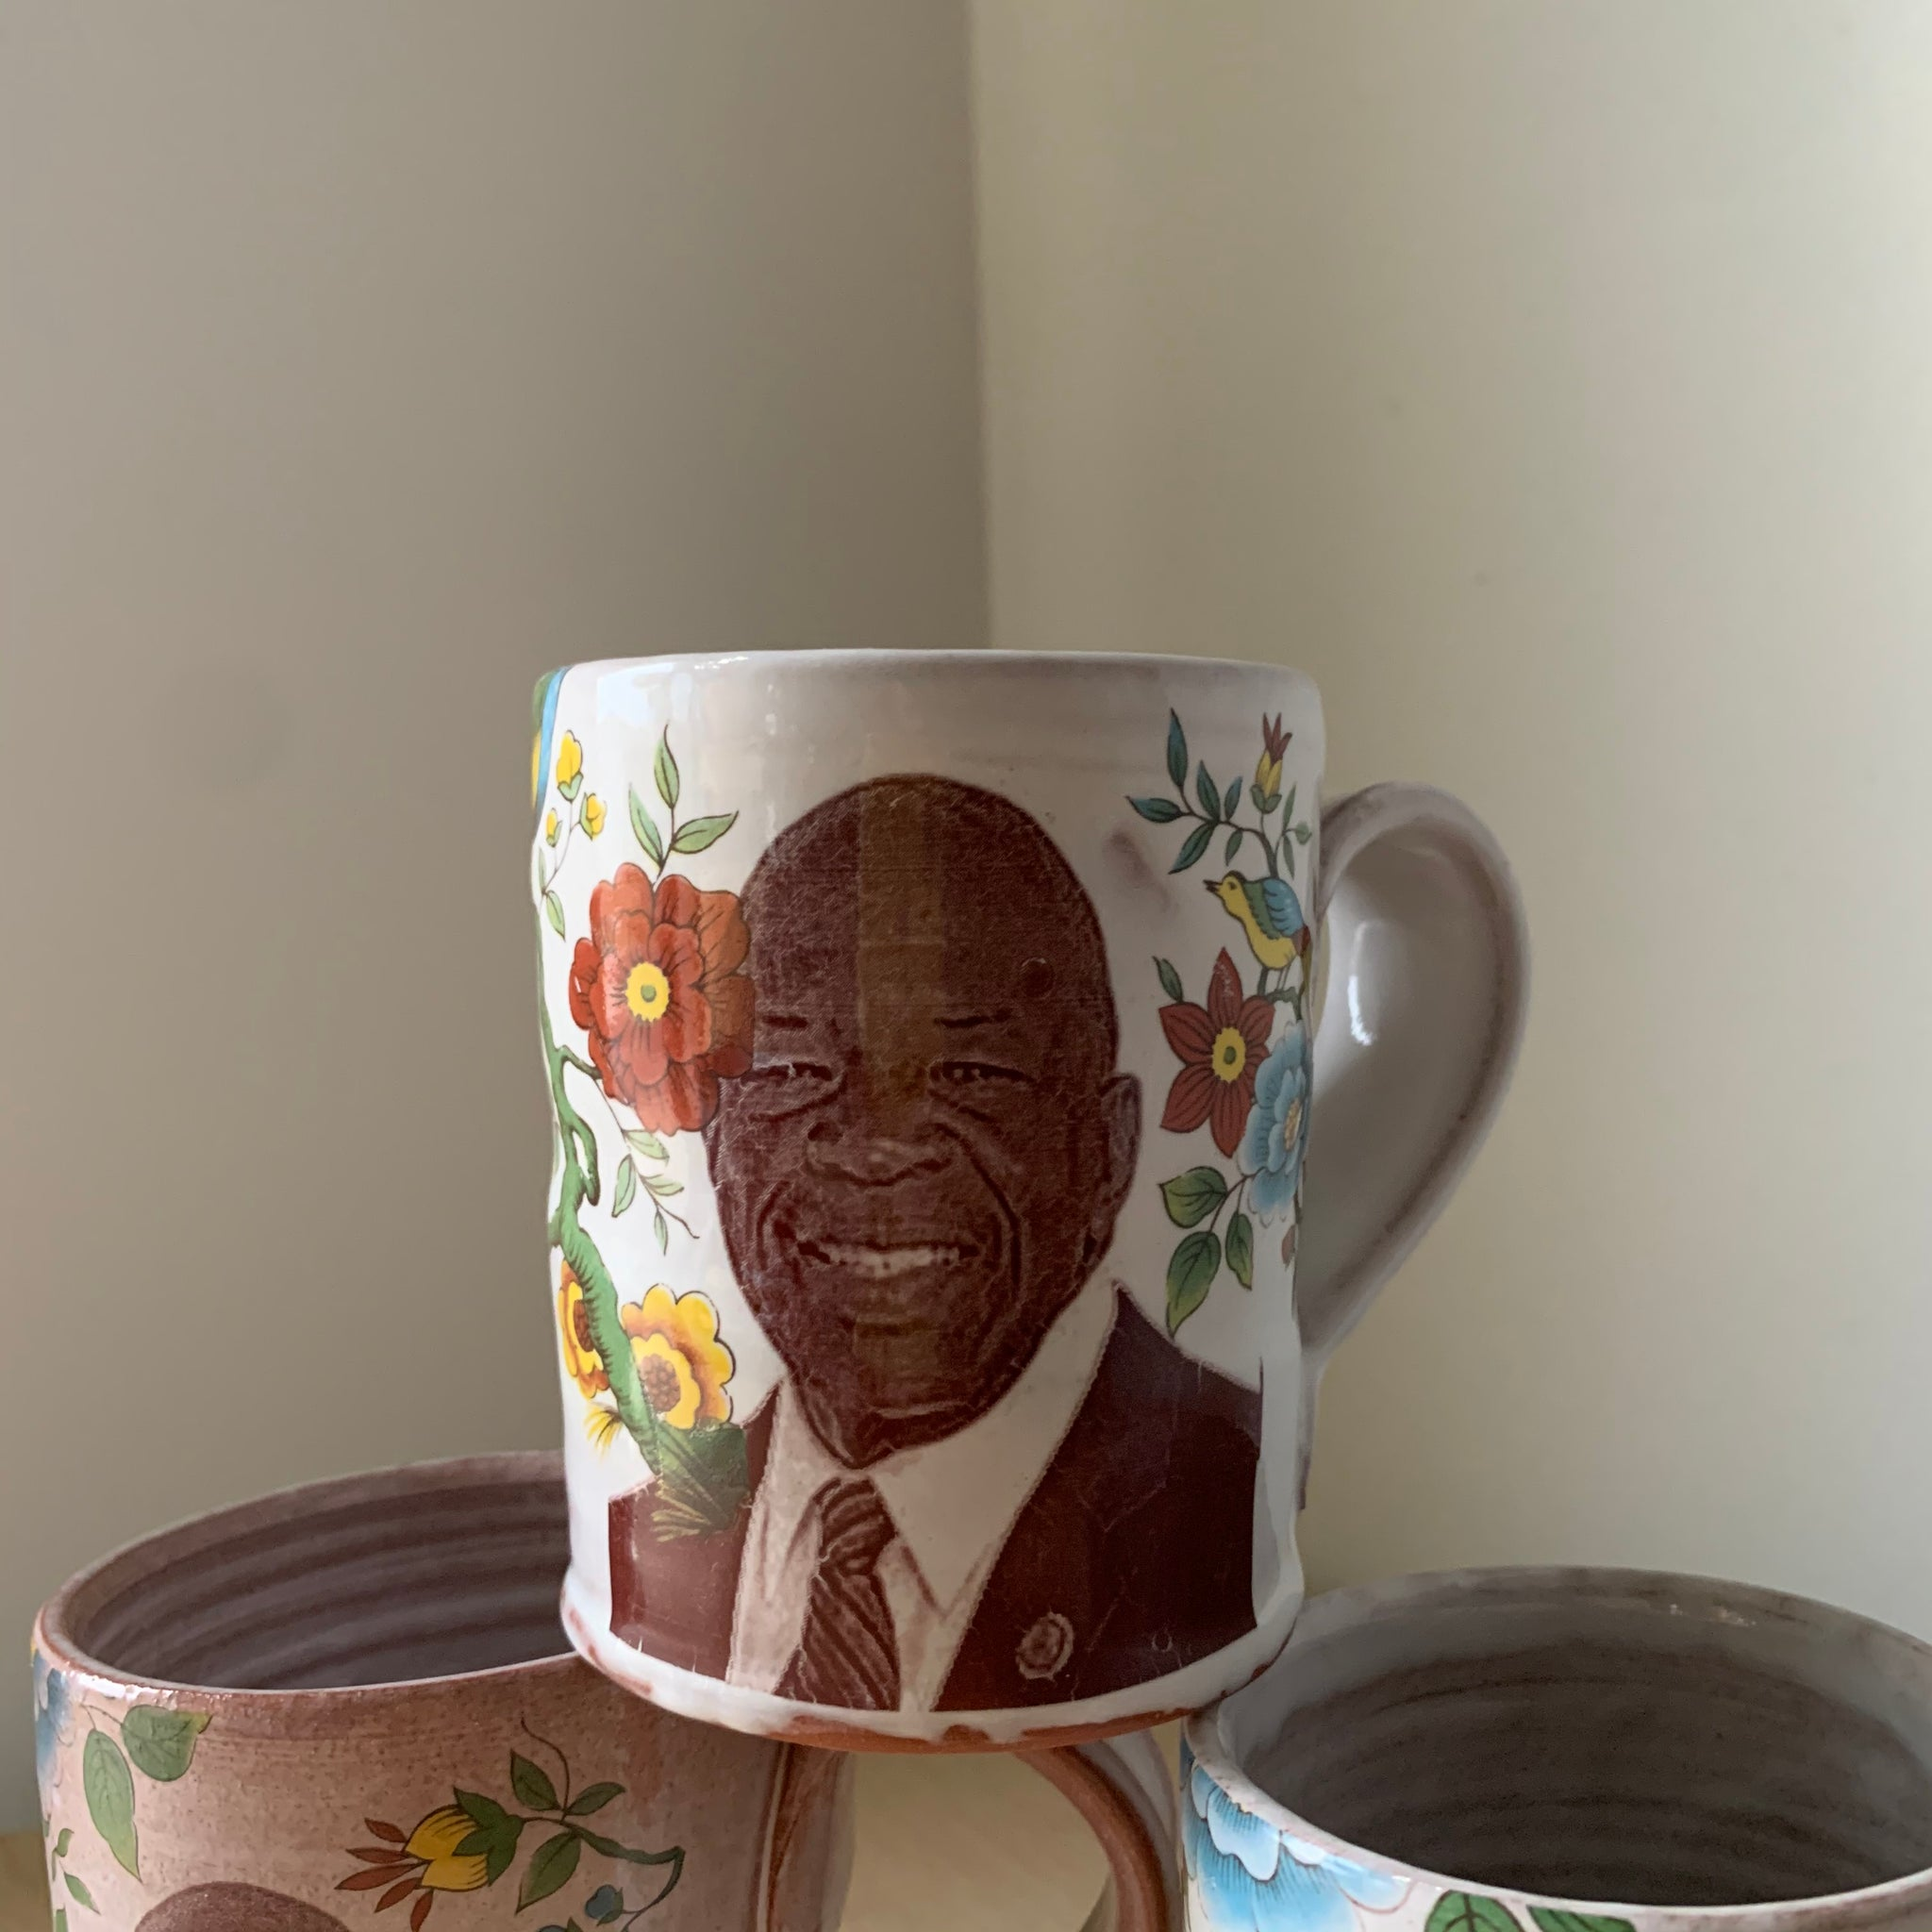 Elijah Cummings Floral Decorated Ceramic Mug by Justin Rothshank - Upstate MN